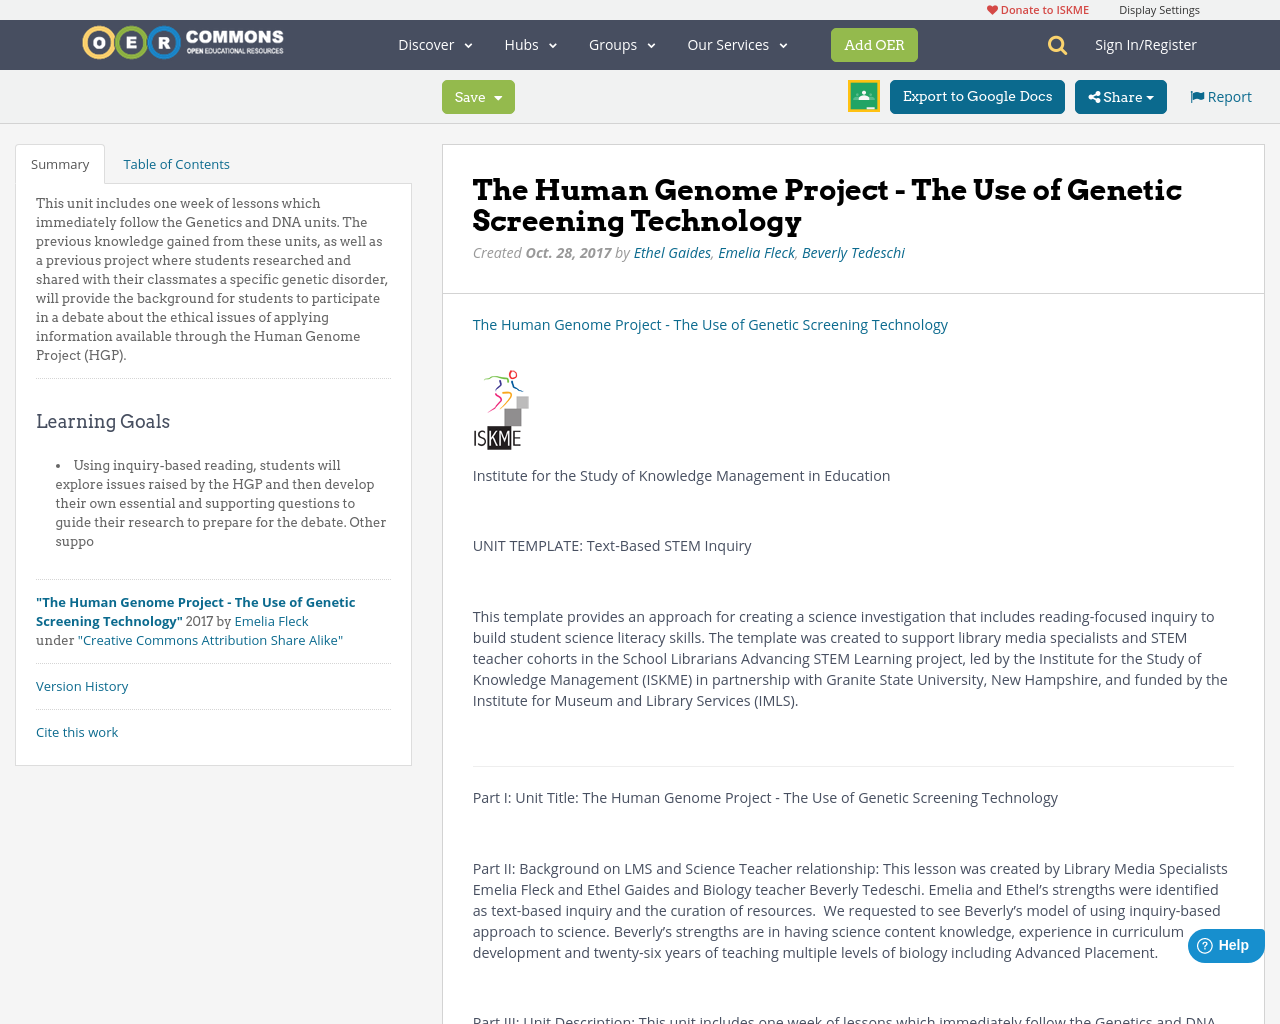 human genome project issues essay Human genome project (hgp) is an international research effort to determine the dna sequence of the entire human genome.